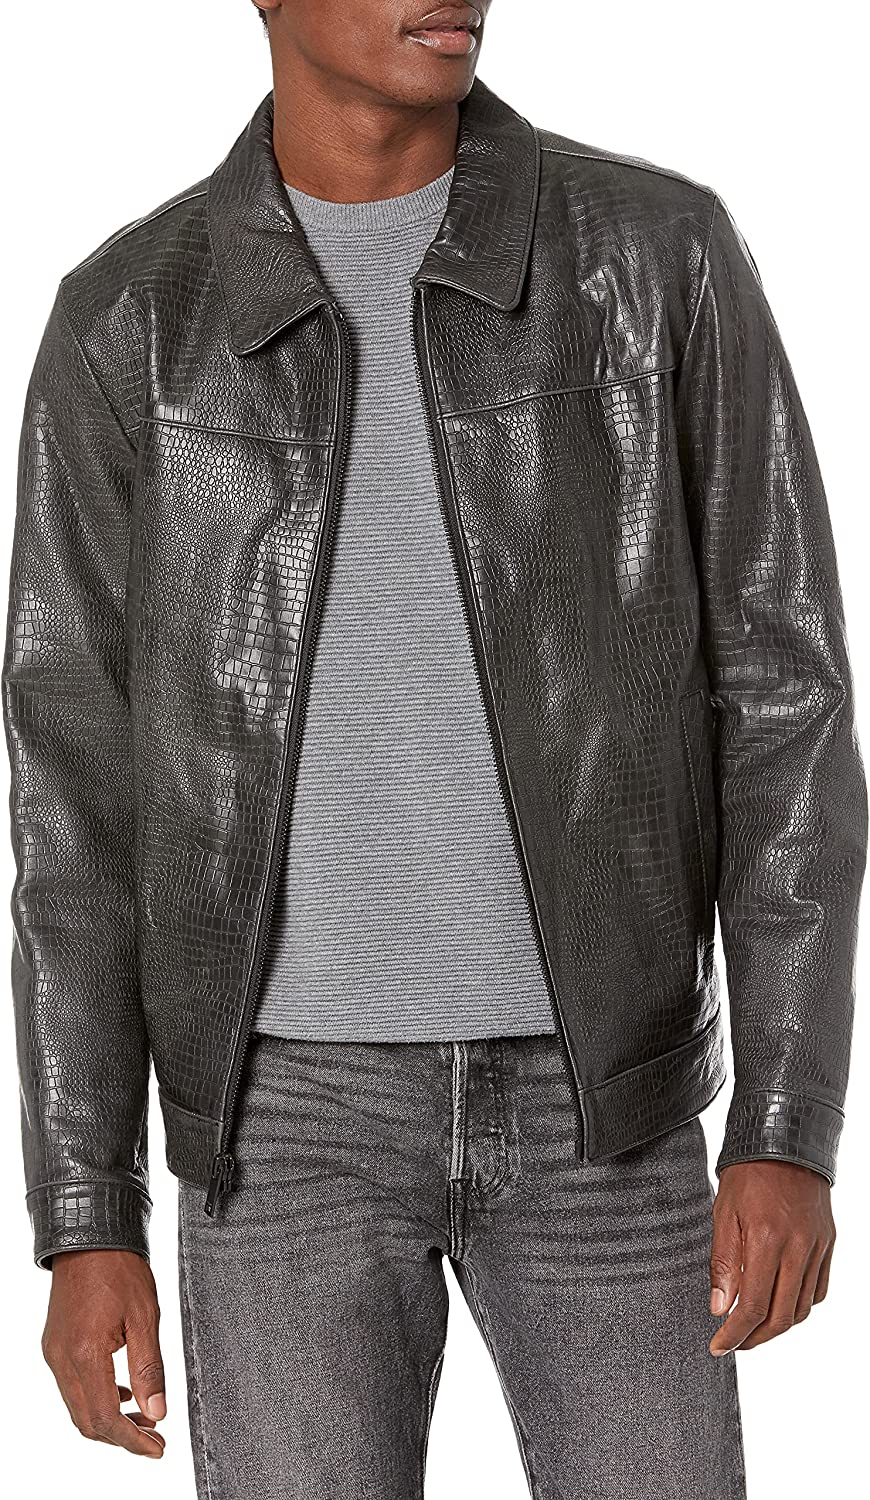 DKNY Men's Real Leather Croc Embossed Jacket